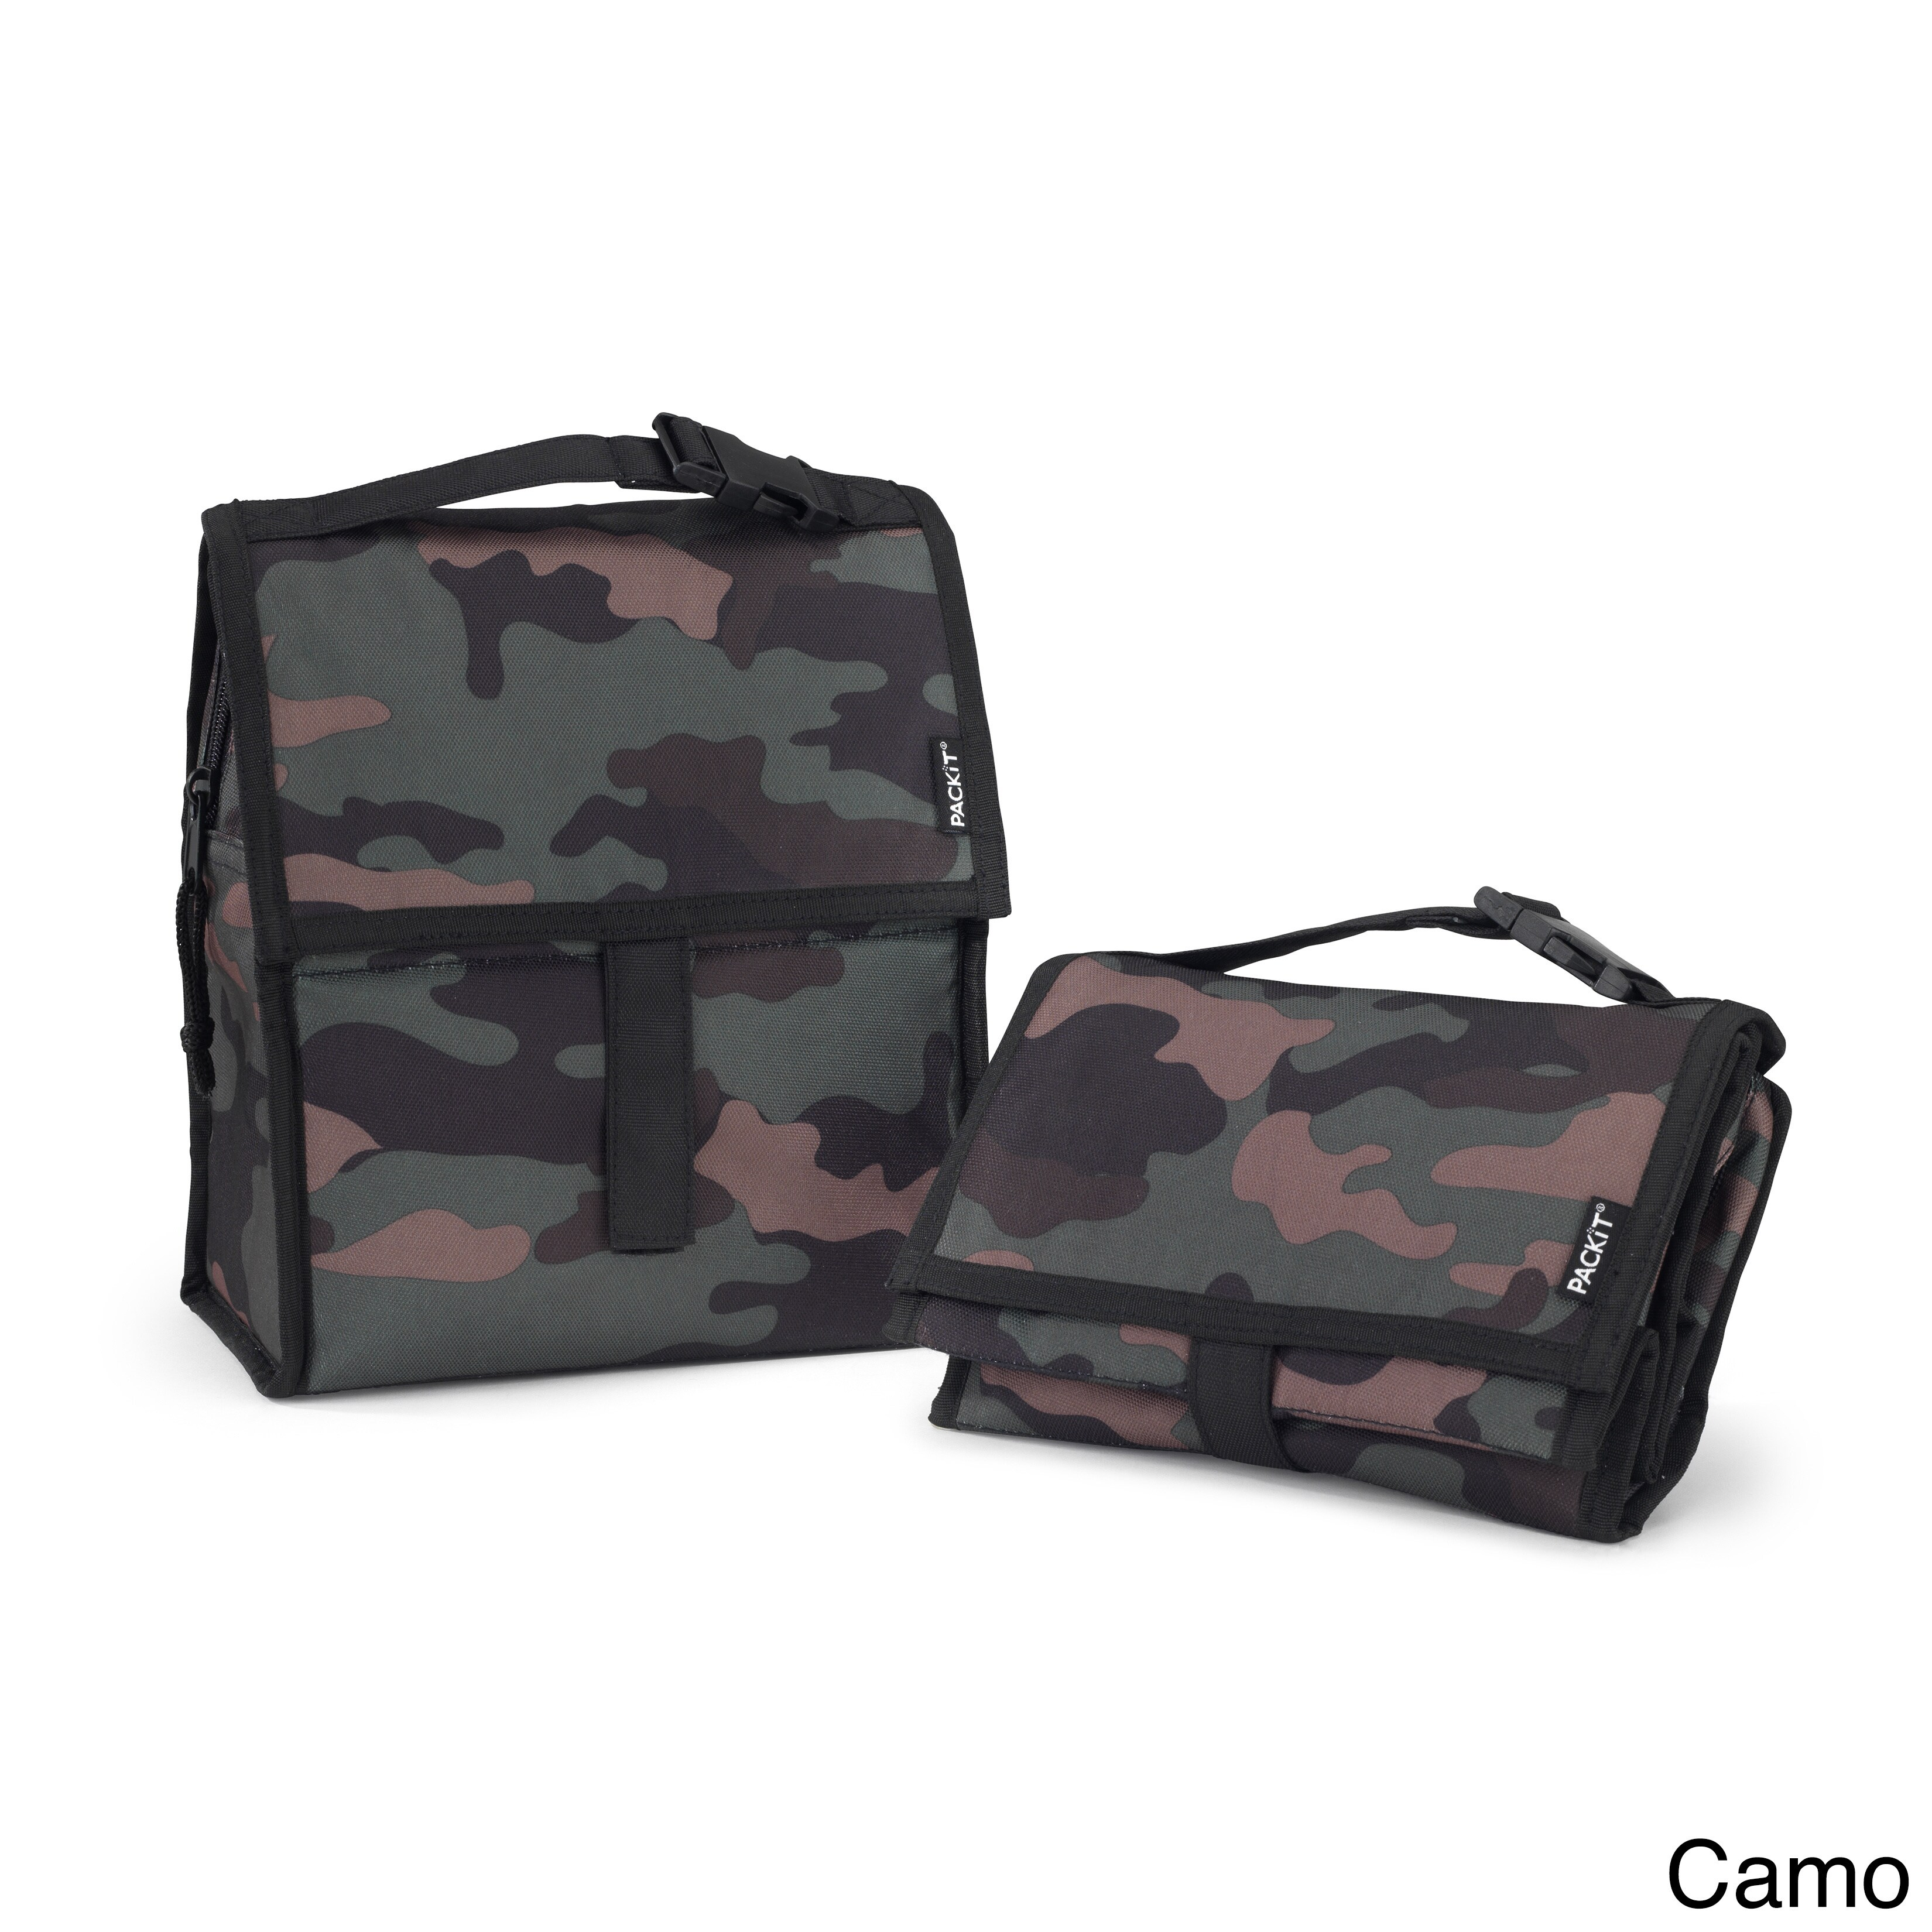 TOTES PACKiT Freezable Lunch Bag (PACKiT Lunch Bag - Camo...